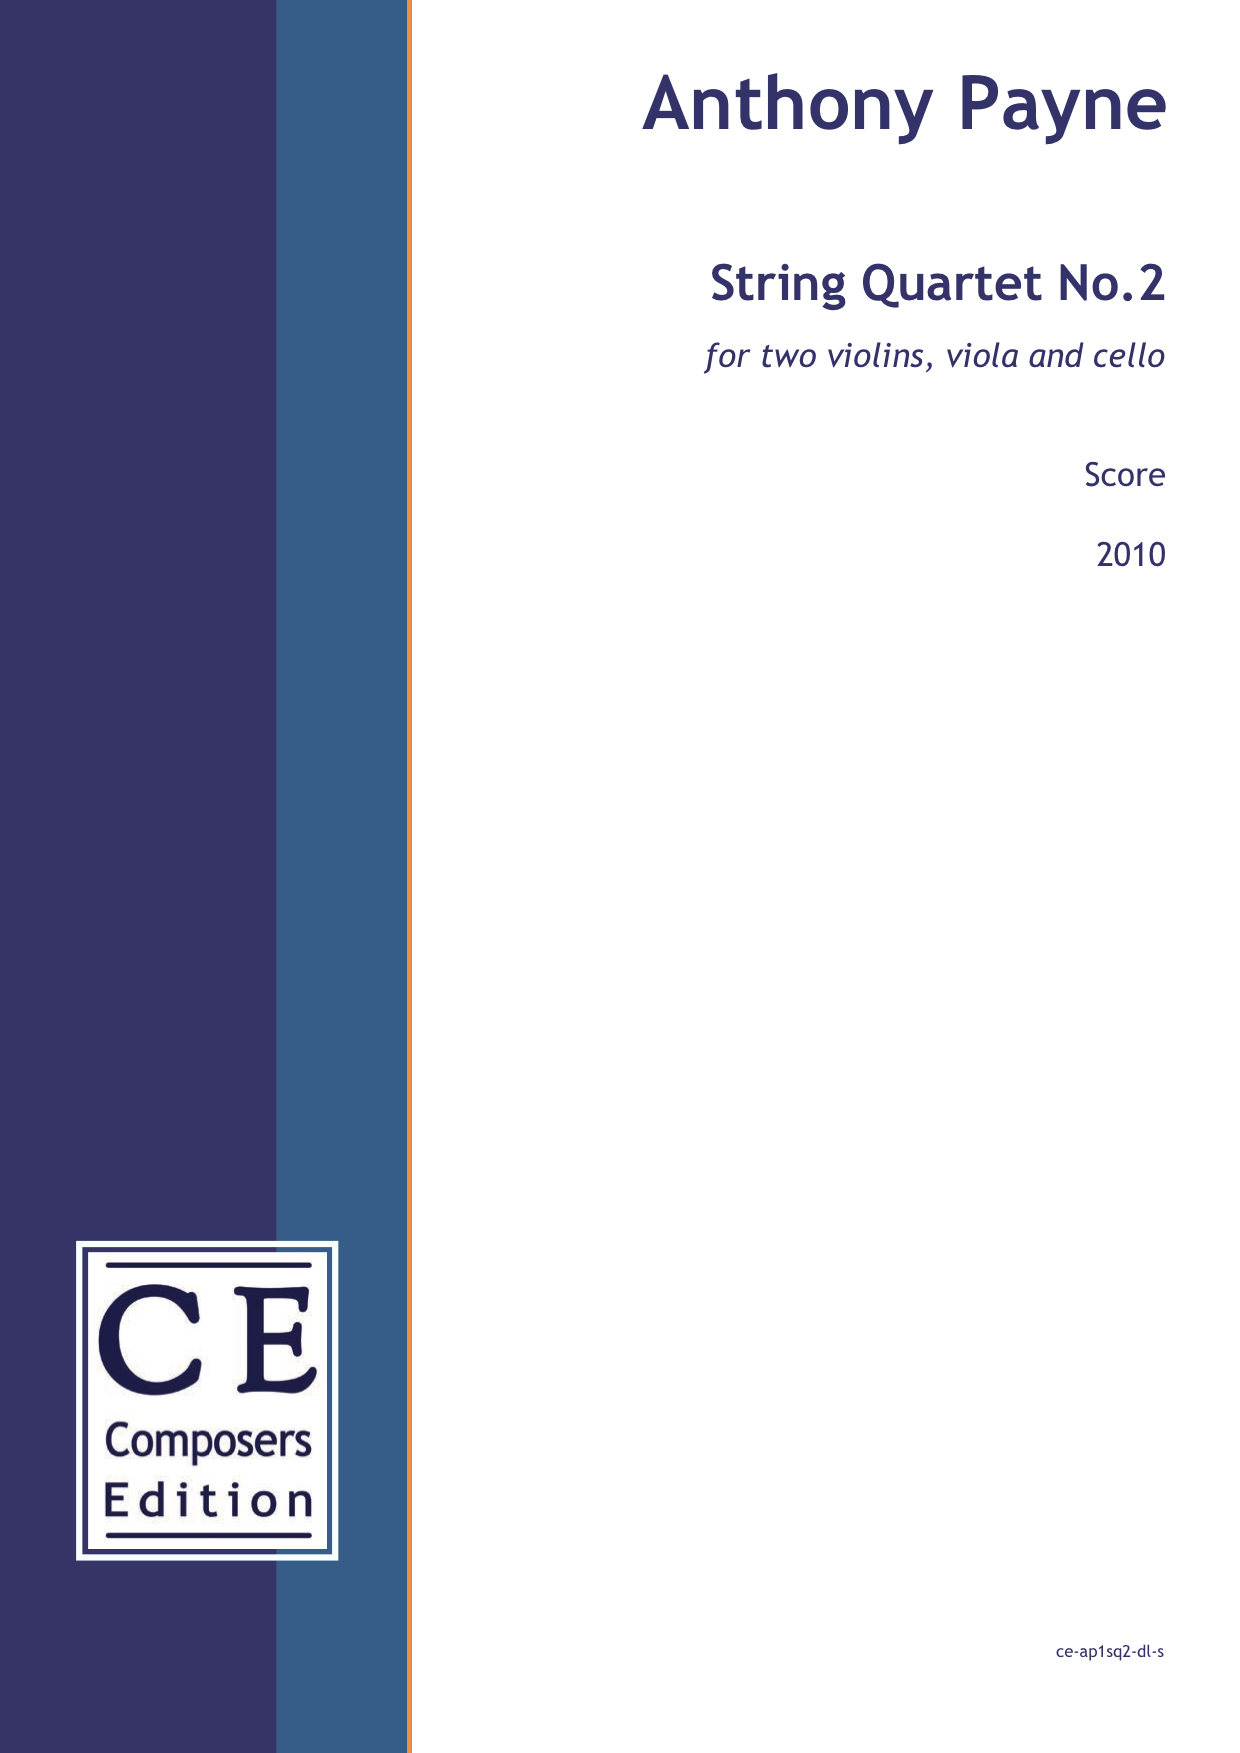 Anthony Payne: String Quartet No.2 for two violins, viola and cello